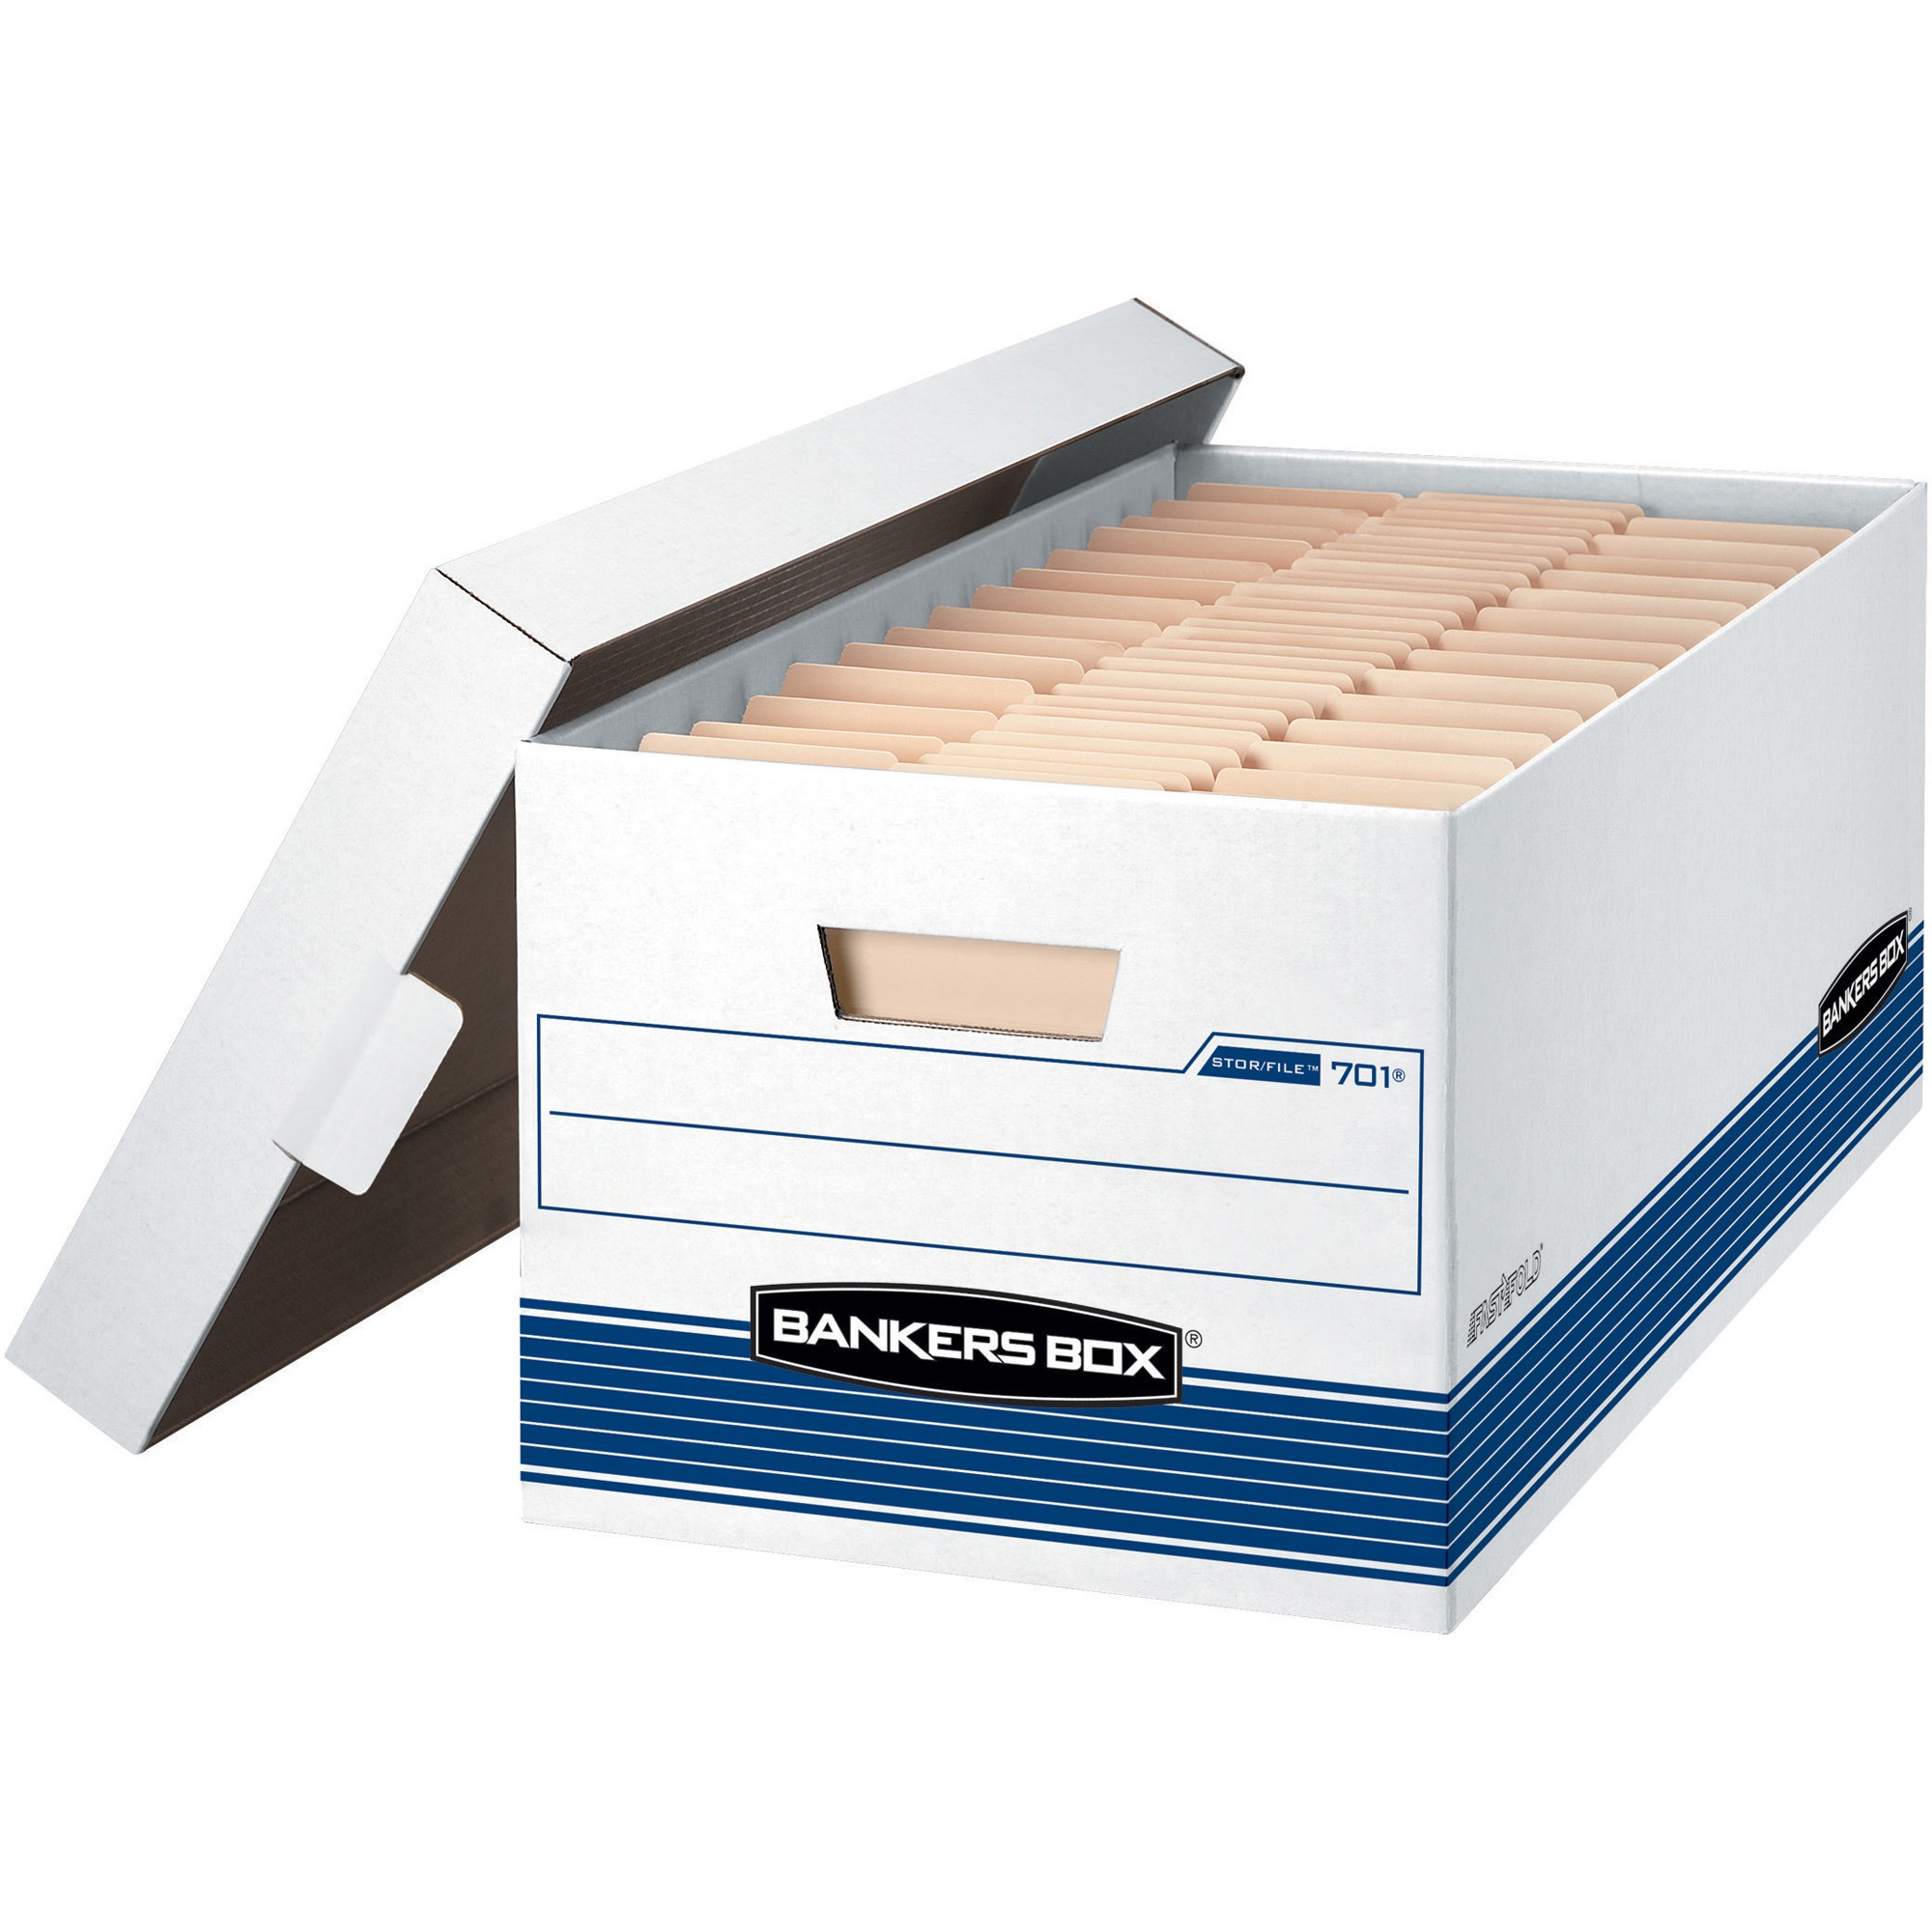 Bankers Box File Storage Boxes with Lids, 12-Pack